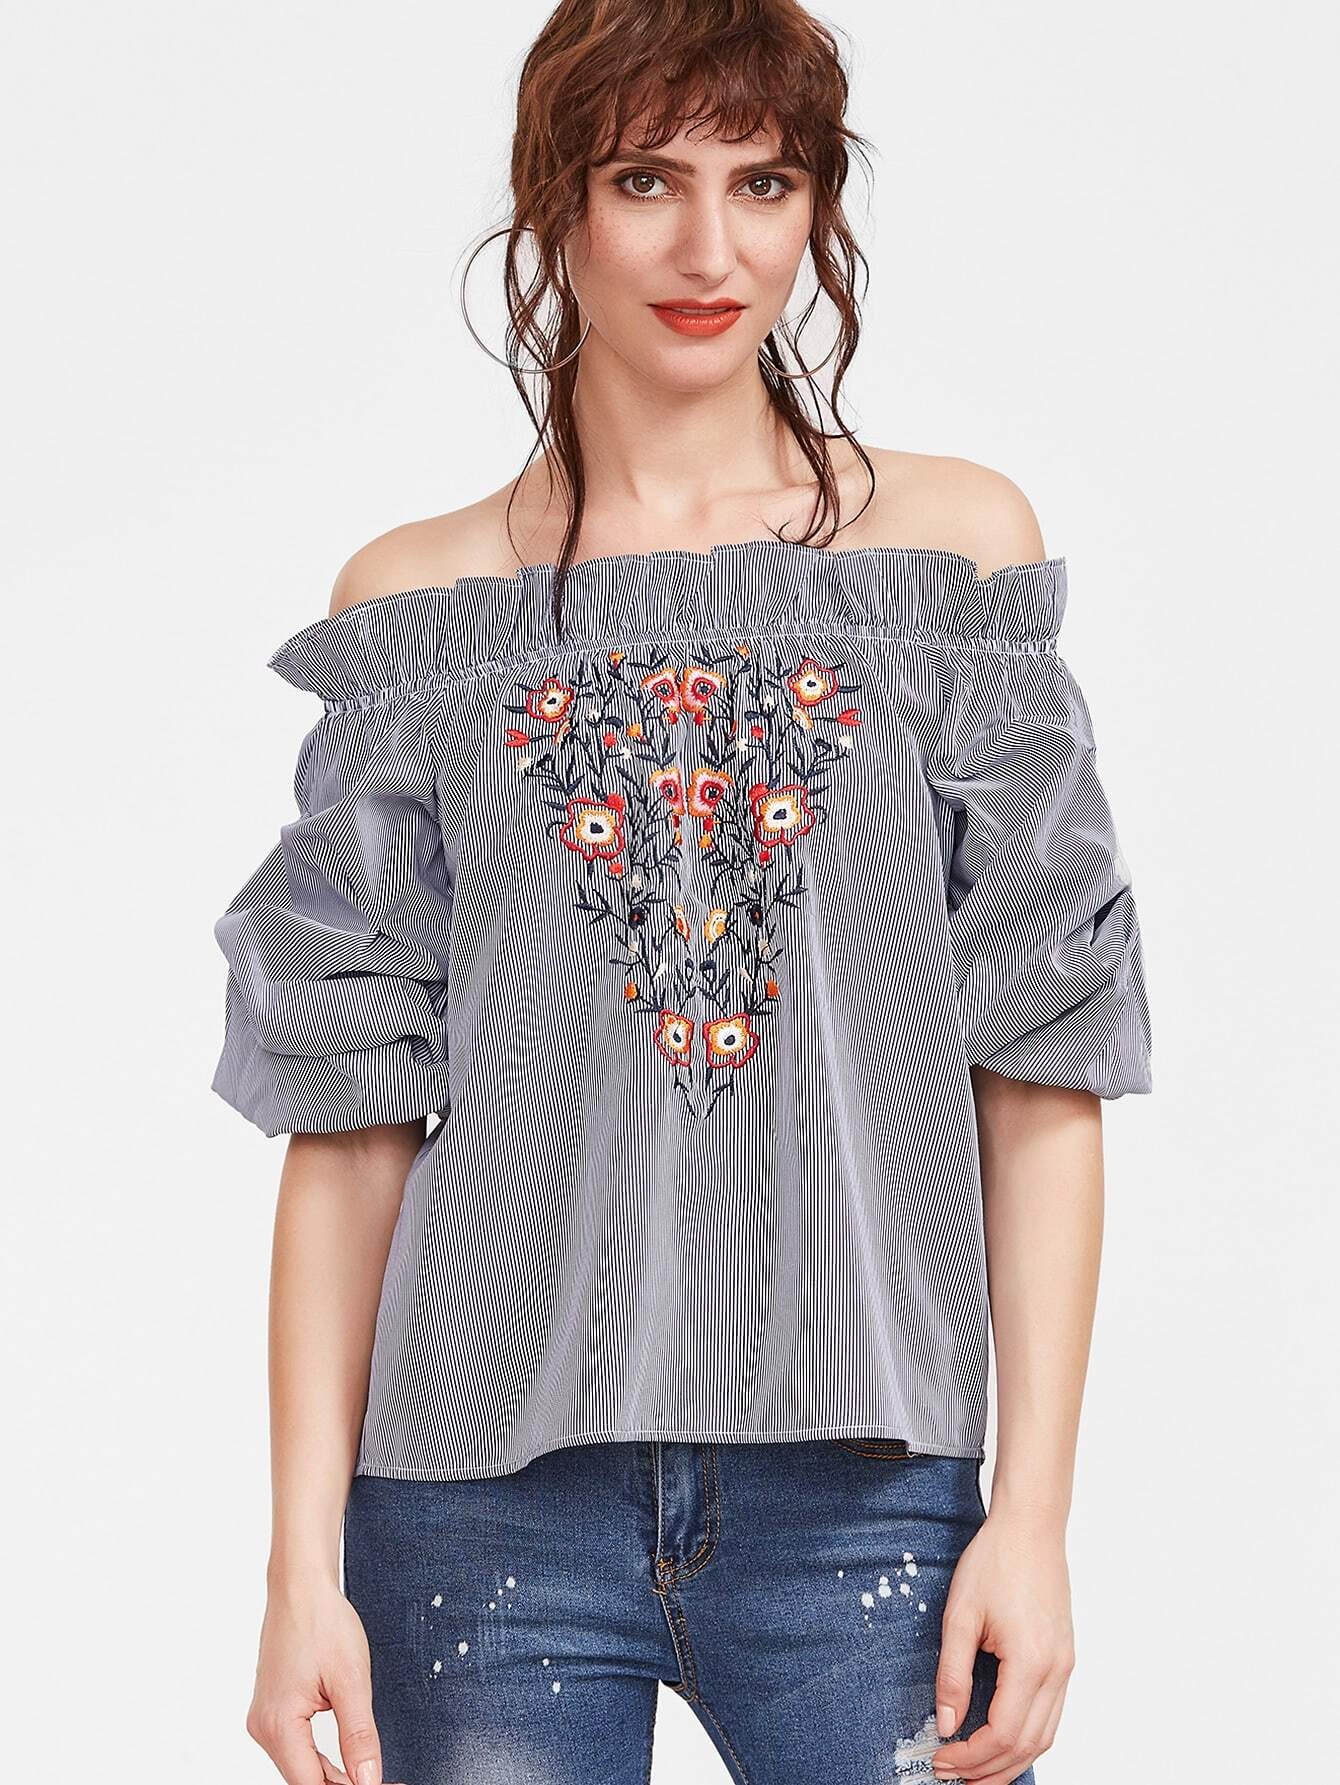 Navy Striped Flower Embroidered Off The Shoulder Top -SheIn(Sheinside)